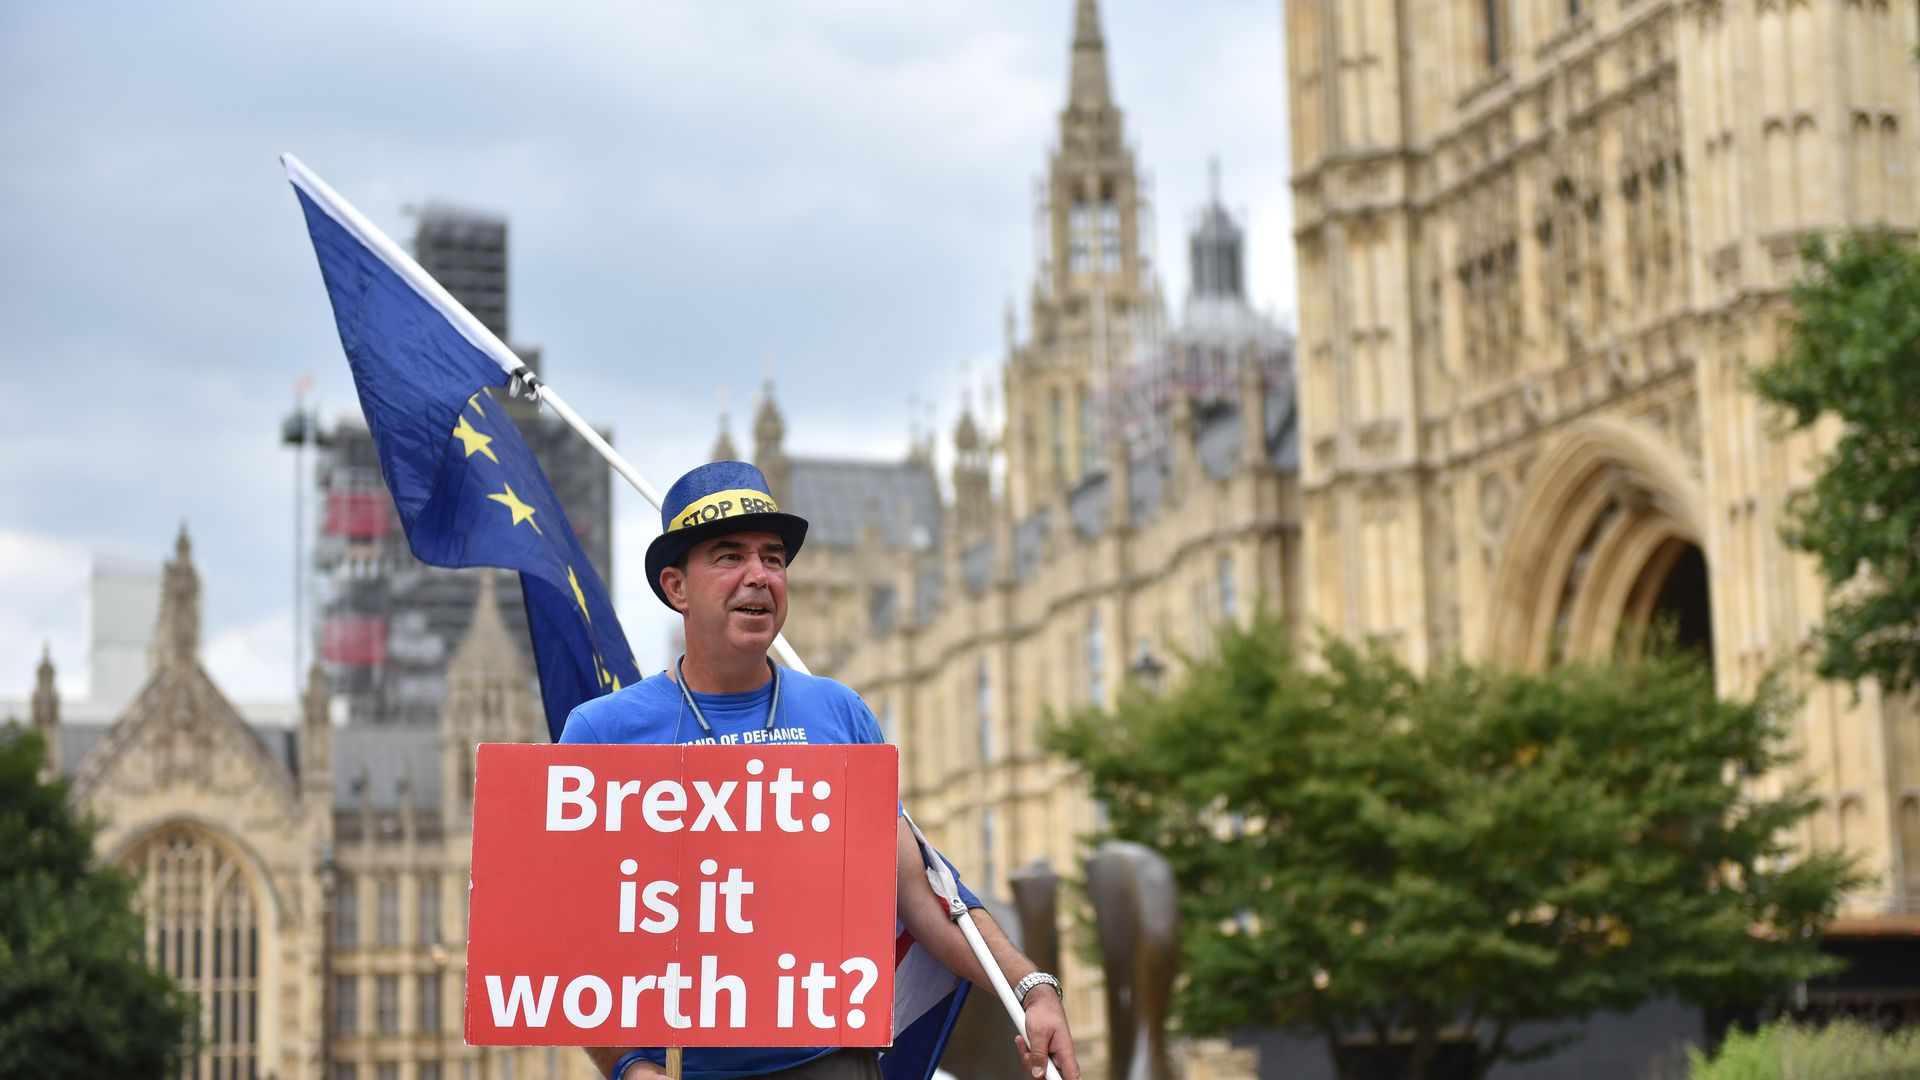 A man holding an anti-Brexit sign outside Westminster